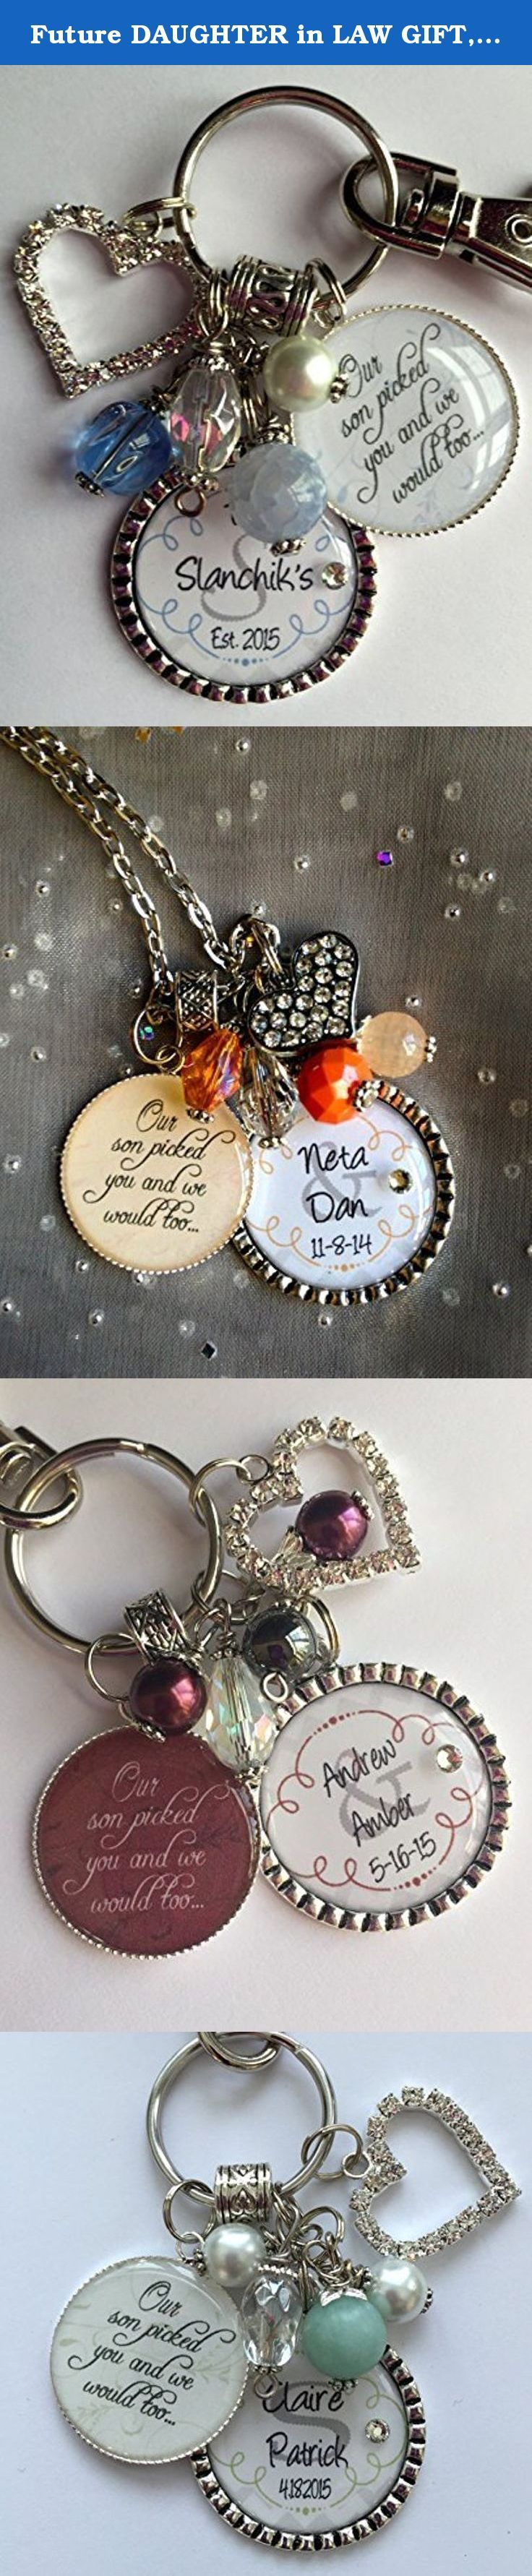 Future DAUGHTER in LAW GIFT, personalized bride to be Our son picked you and we would too wedding date last name bride and groom keychain key chain necklace. © 2015 Trendy Tz ***Please leave upon checkout*** 1. Couples last name (as shown Rockford) -or- 2 names (also shown Neta & Dan) 2. Year of marriage (as shown 2014) -or- actual wedding day (whichever you prefer) ***************************************** Double pendant keychain with 2 quotes for your daughter-in-law to be. 1st pendant...